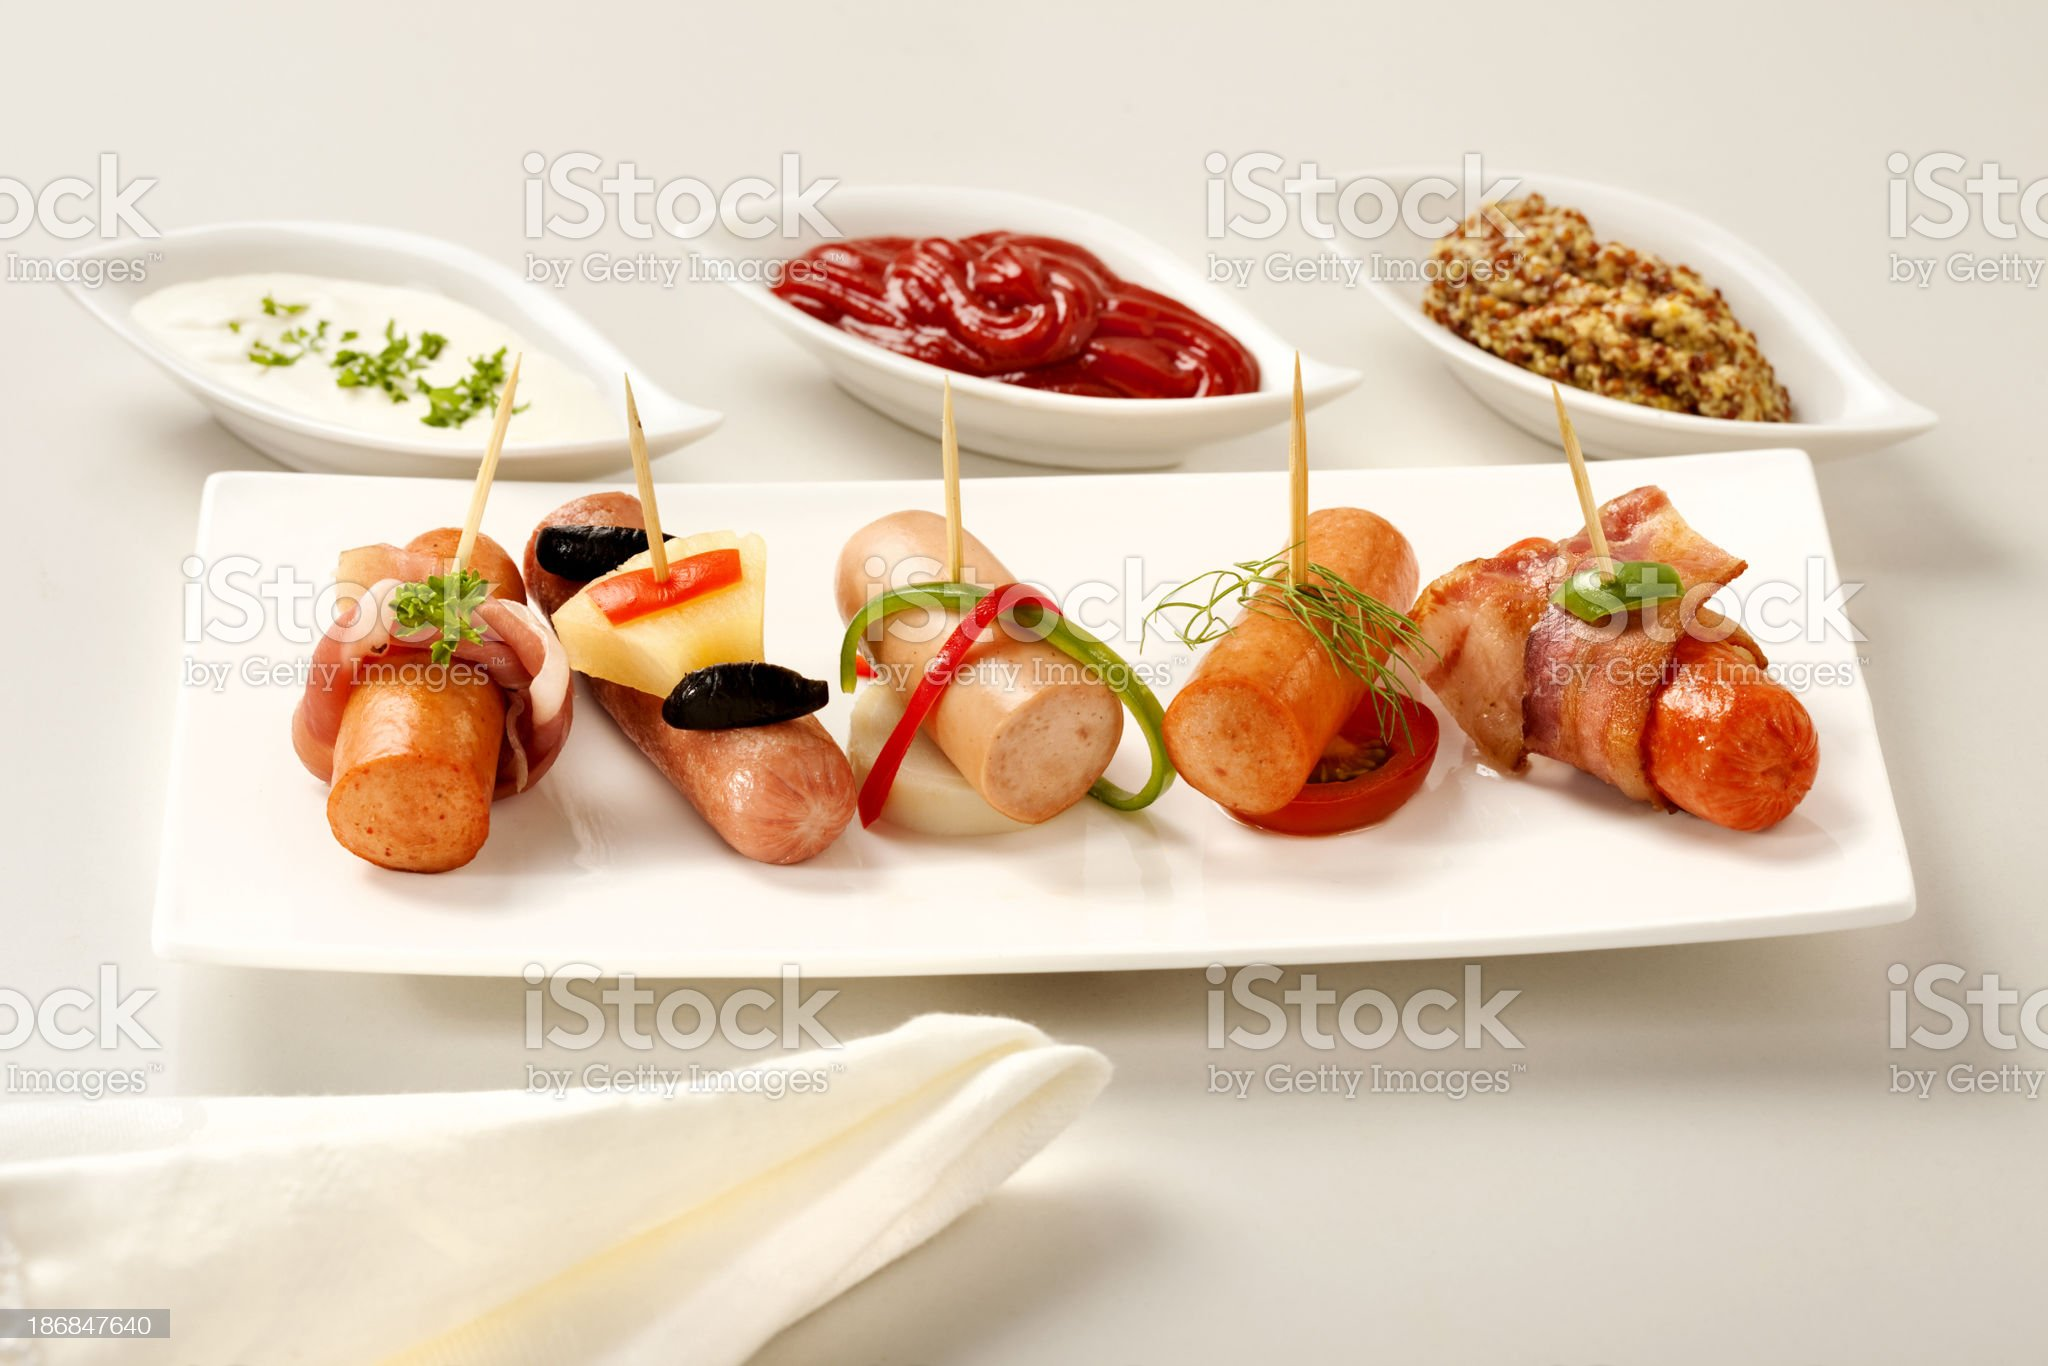 Sausages appetizer royalty-free stock photo